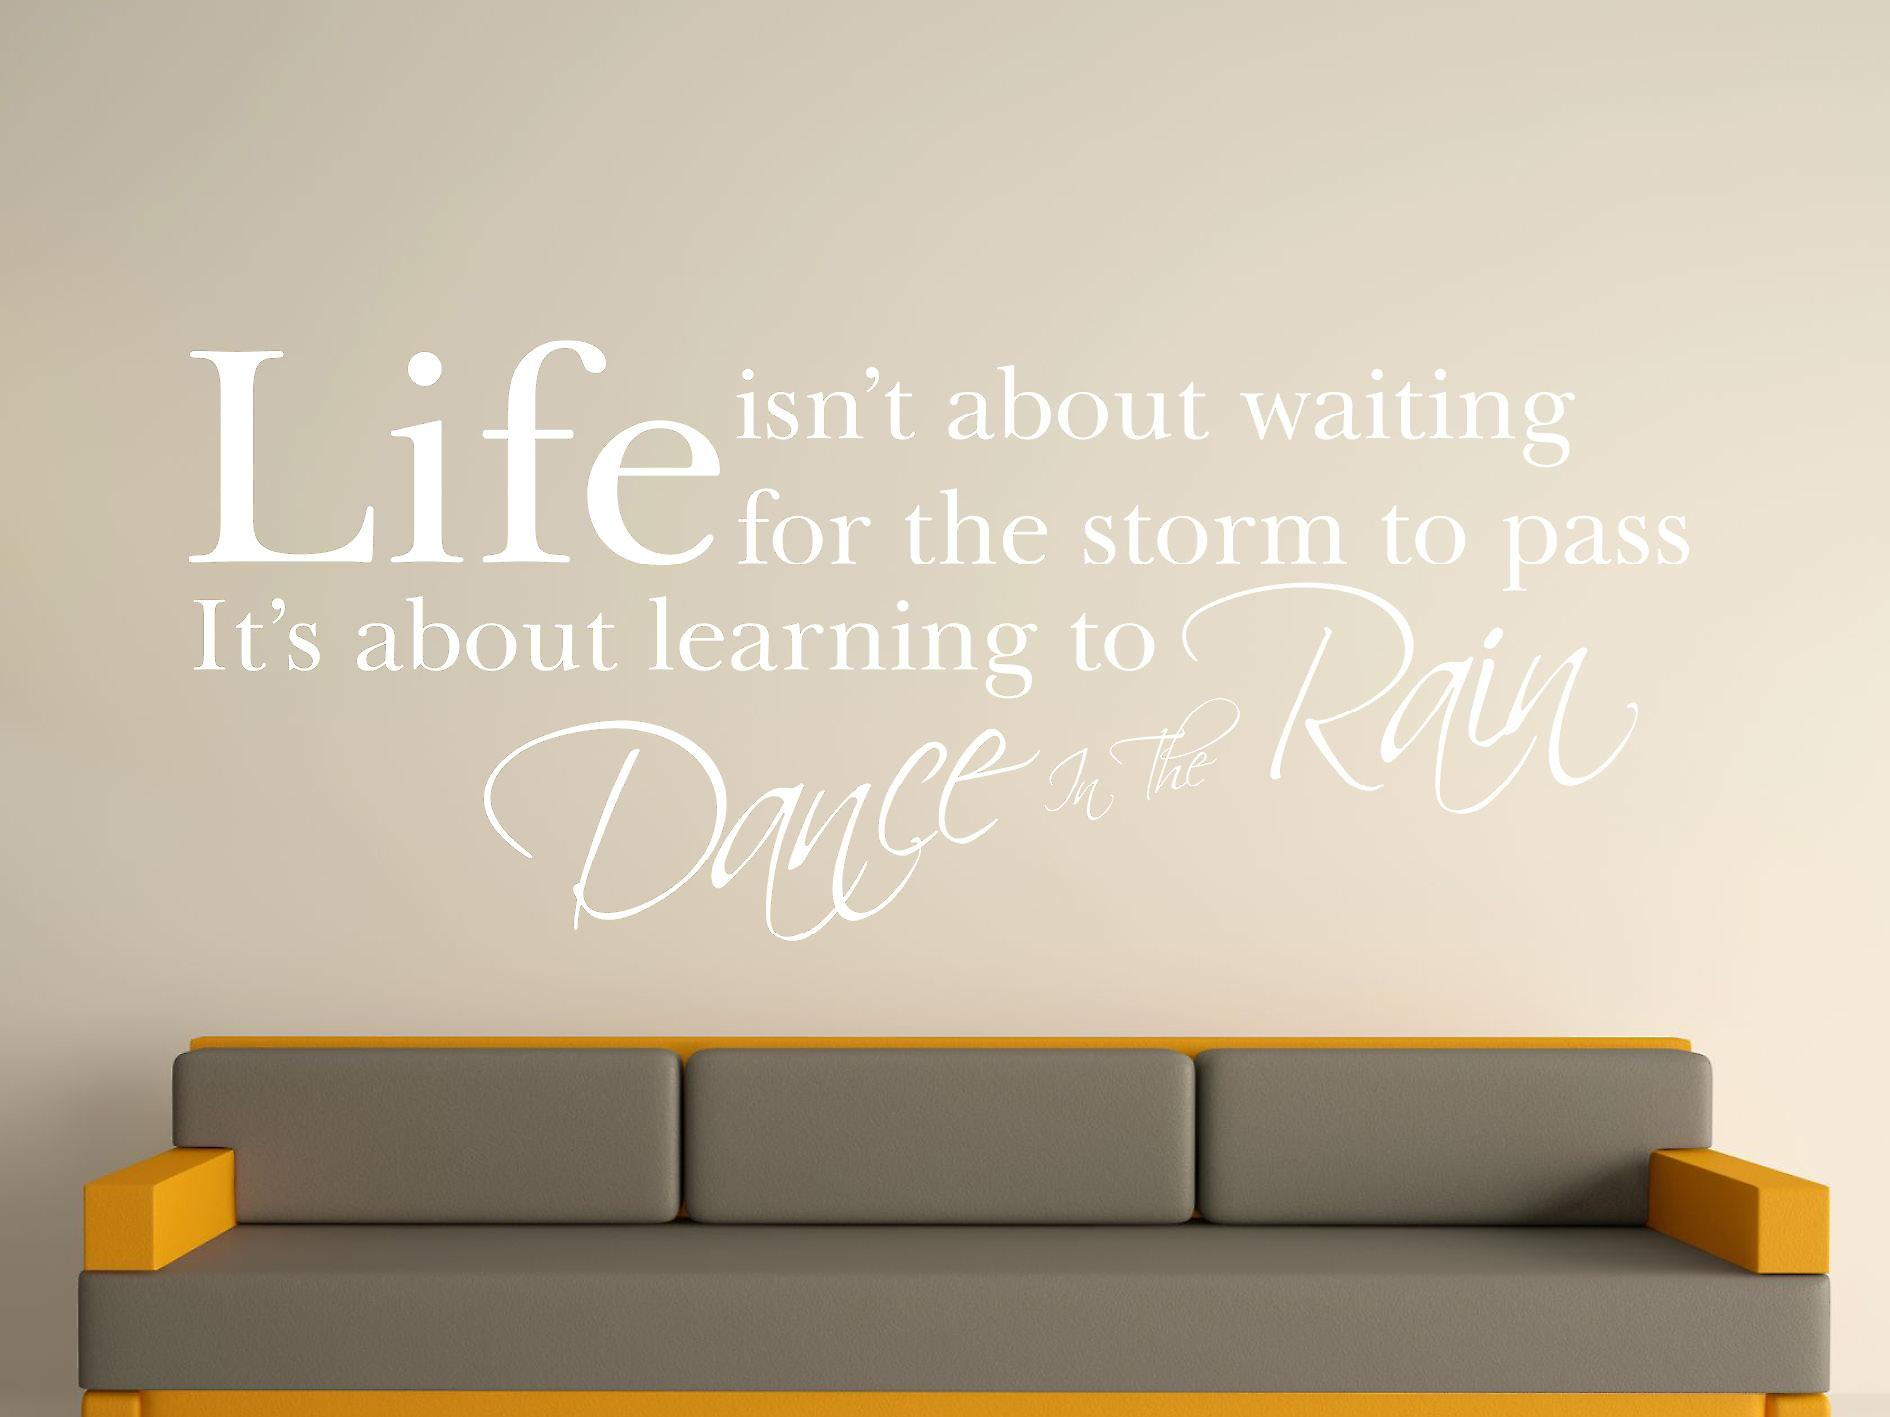 Dance In The Rain Wall Art Sticker - White